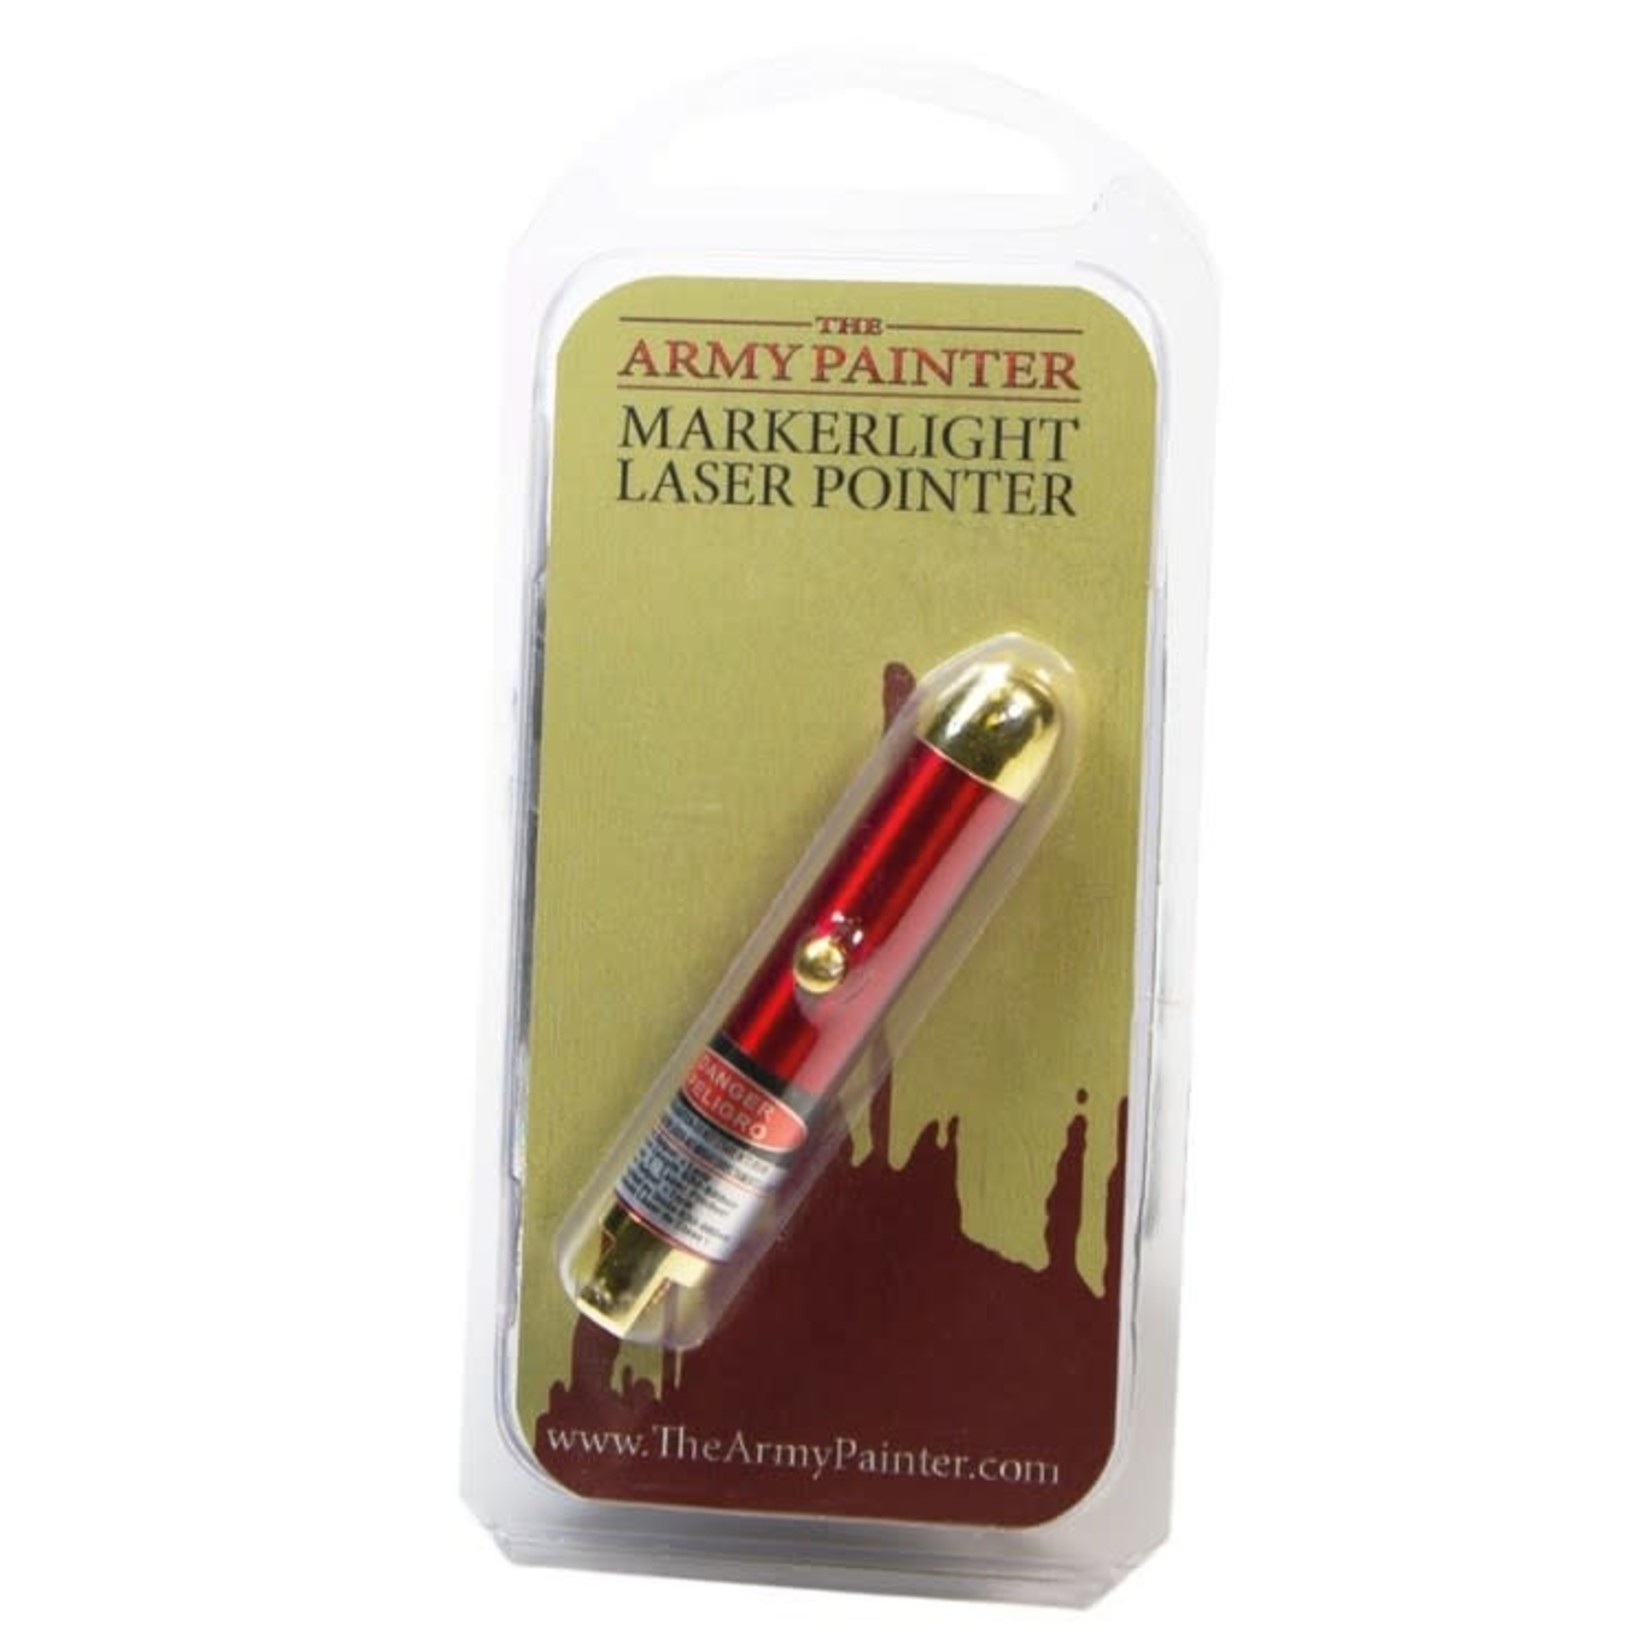 The Army Painter The Army Painter: Markerlight Laser Pointer